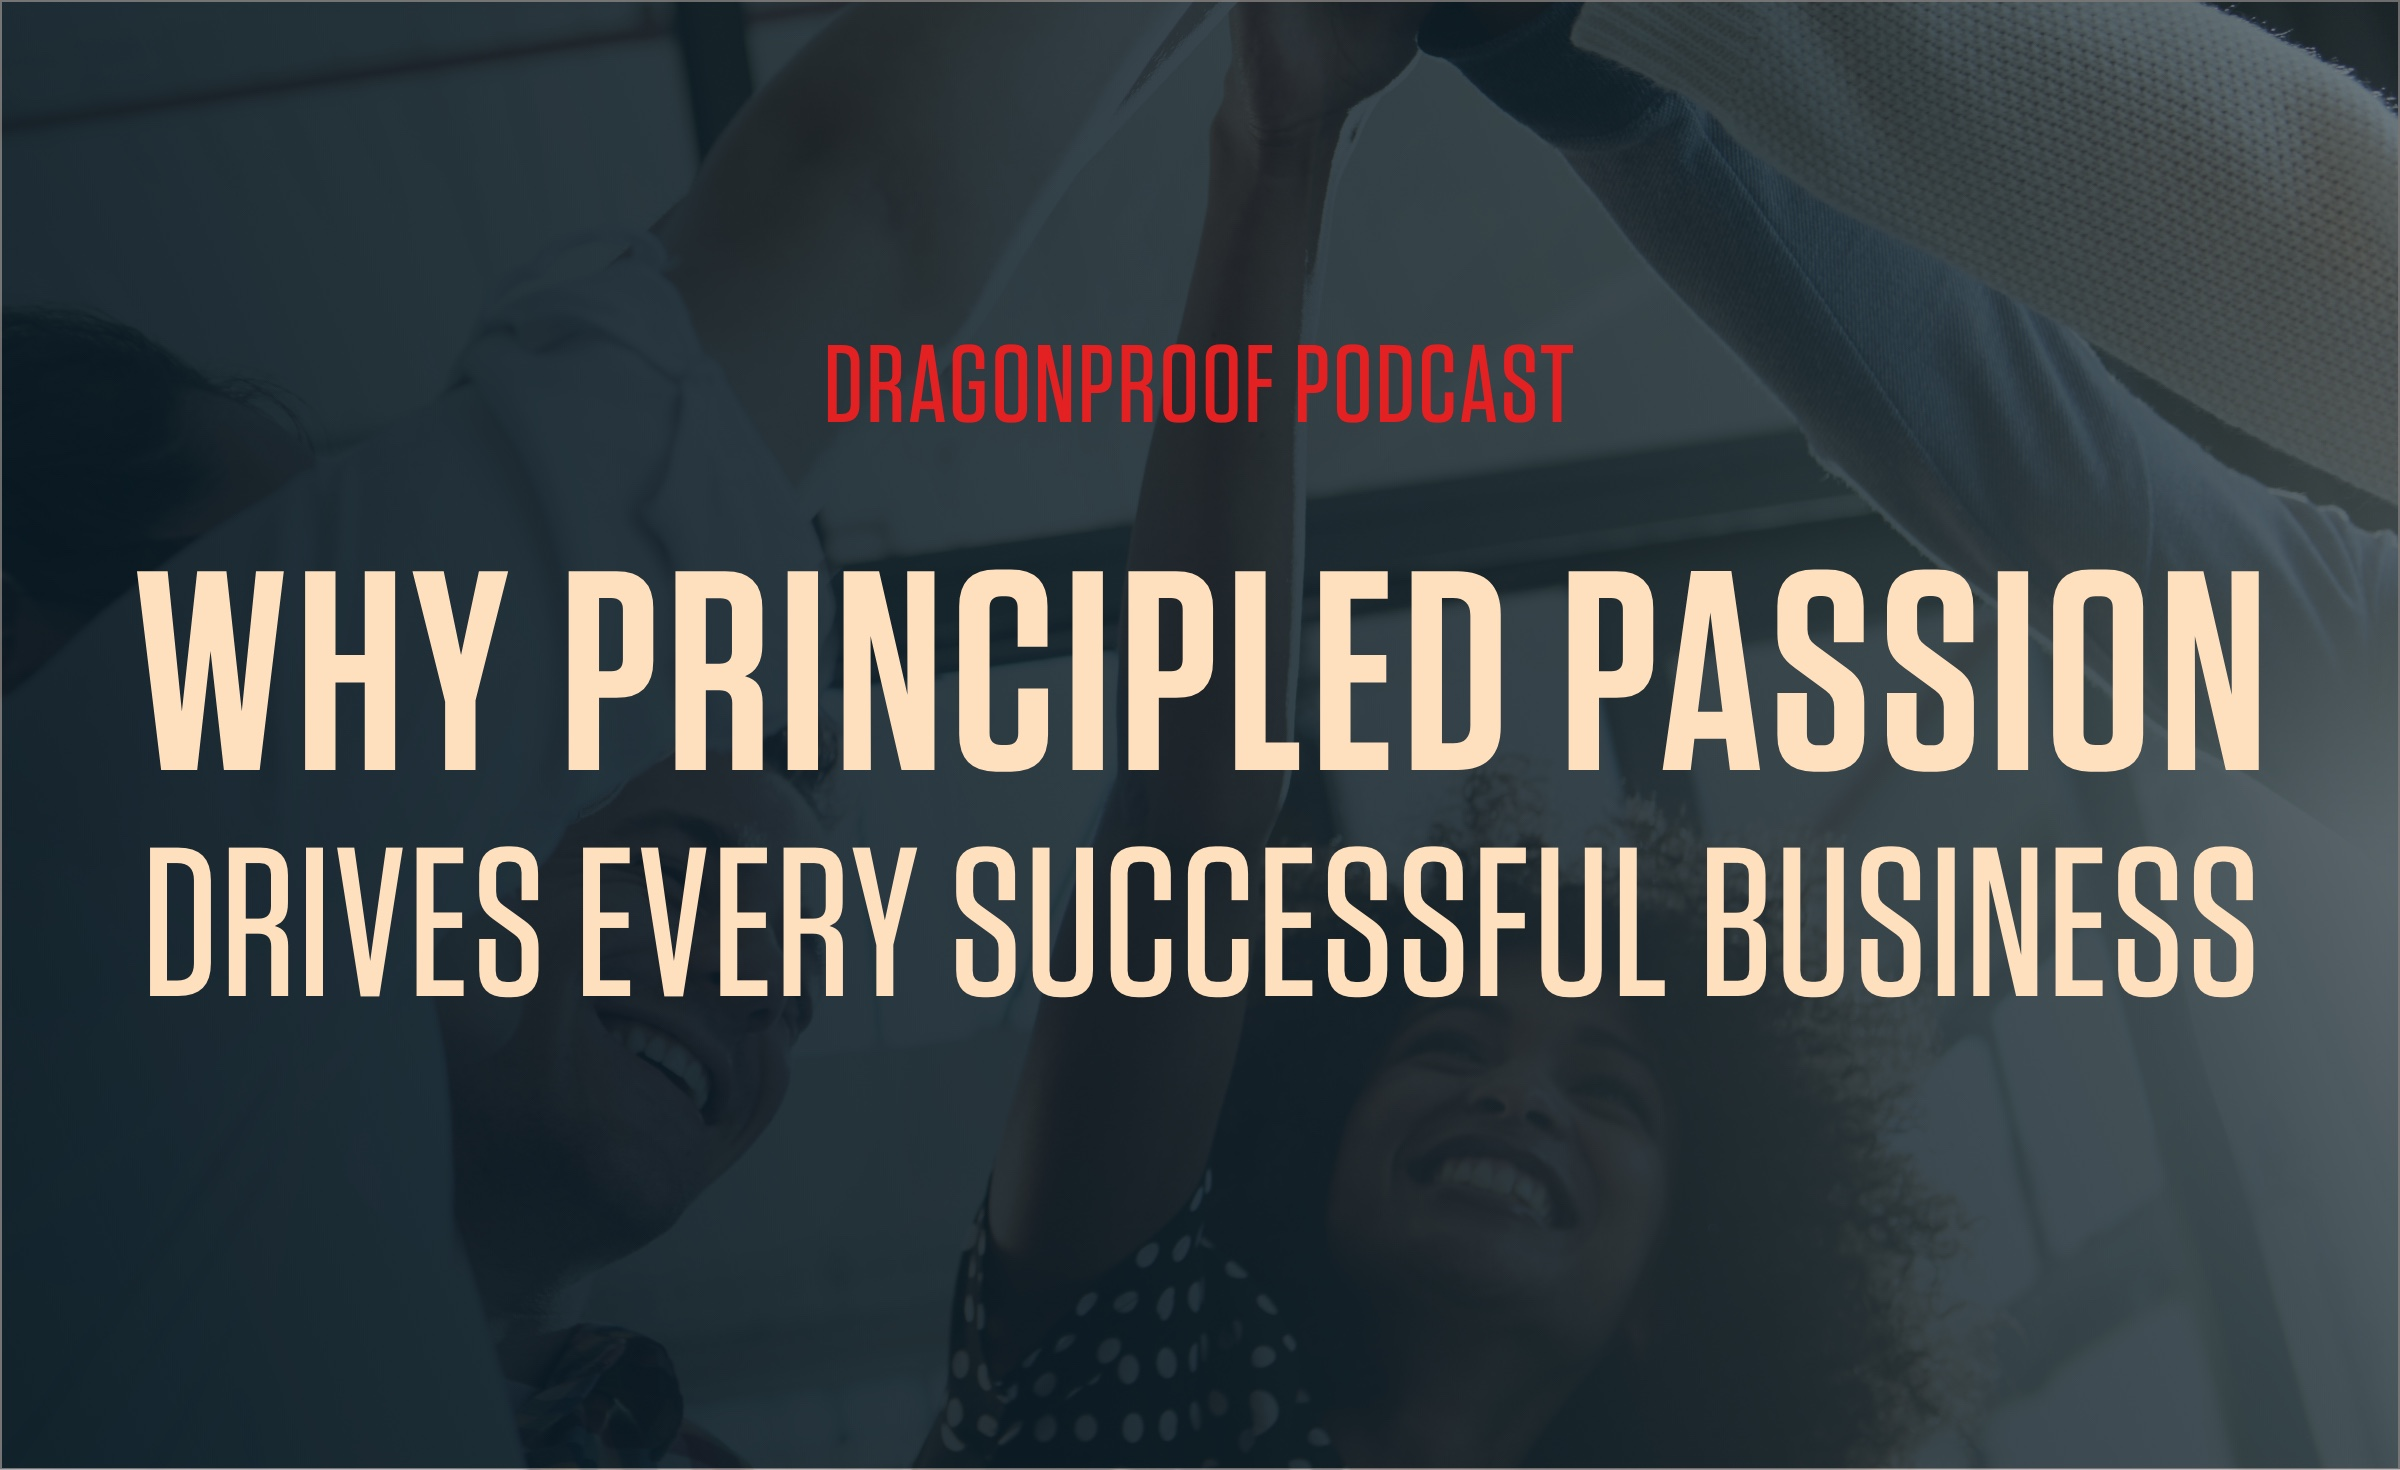 Dragonproof Podcast   Why Principled Passion Drives Every Successful Business